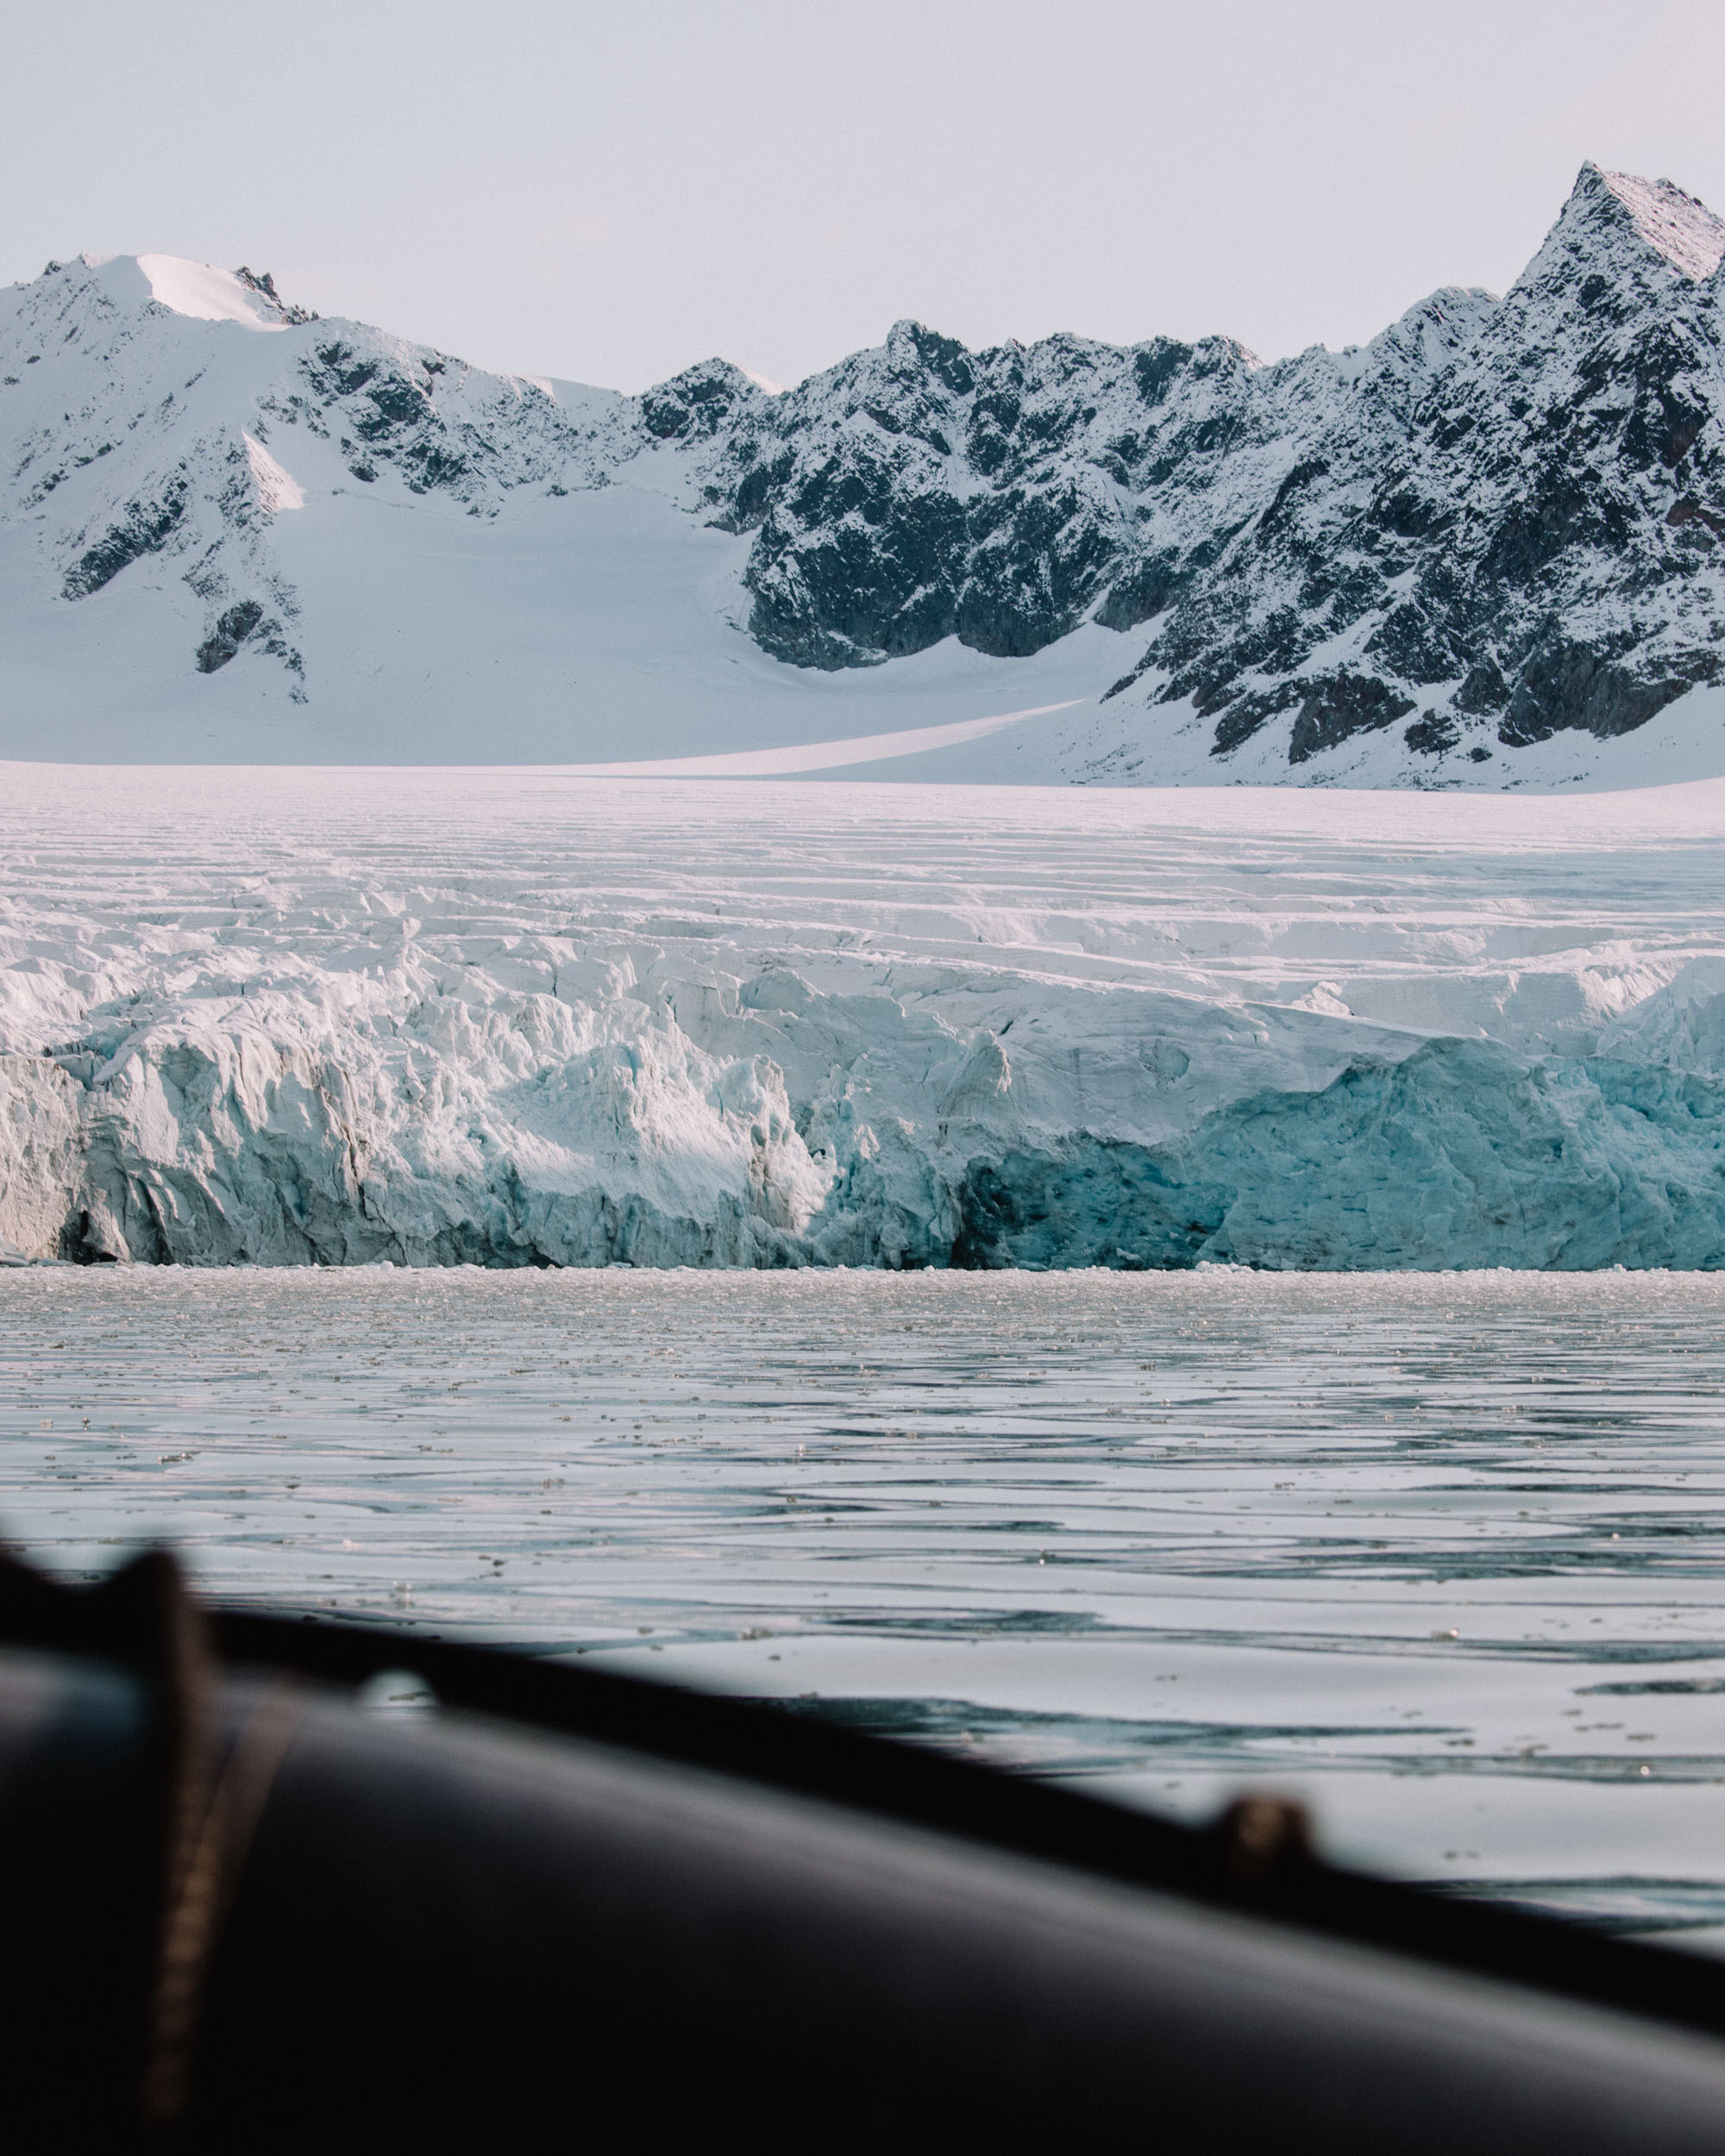 Glacier in Svalbard, Spitsbergen from a boat with blue layers of ice